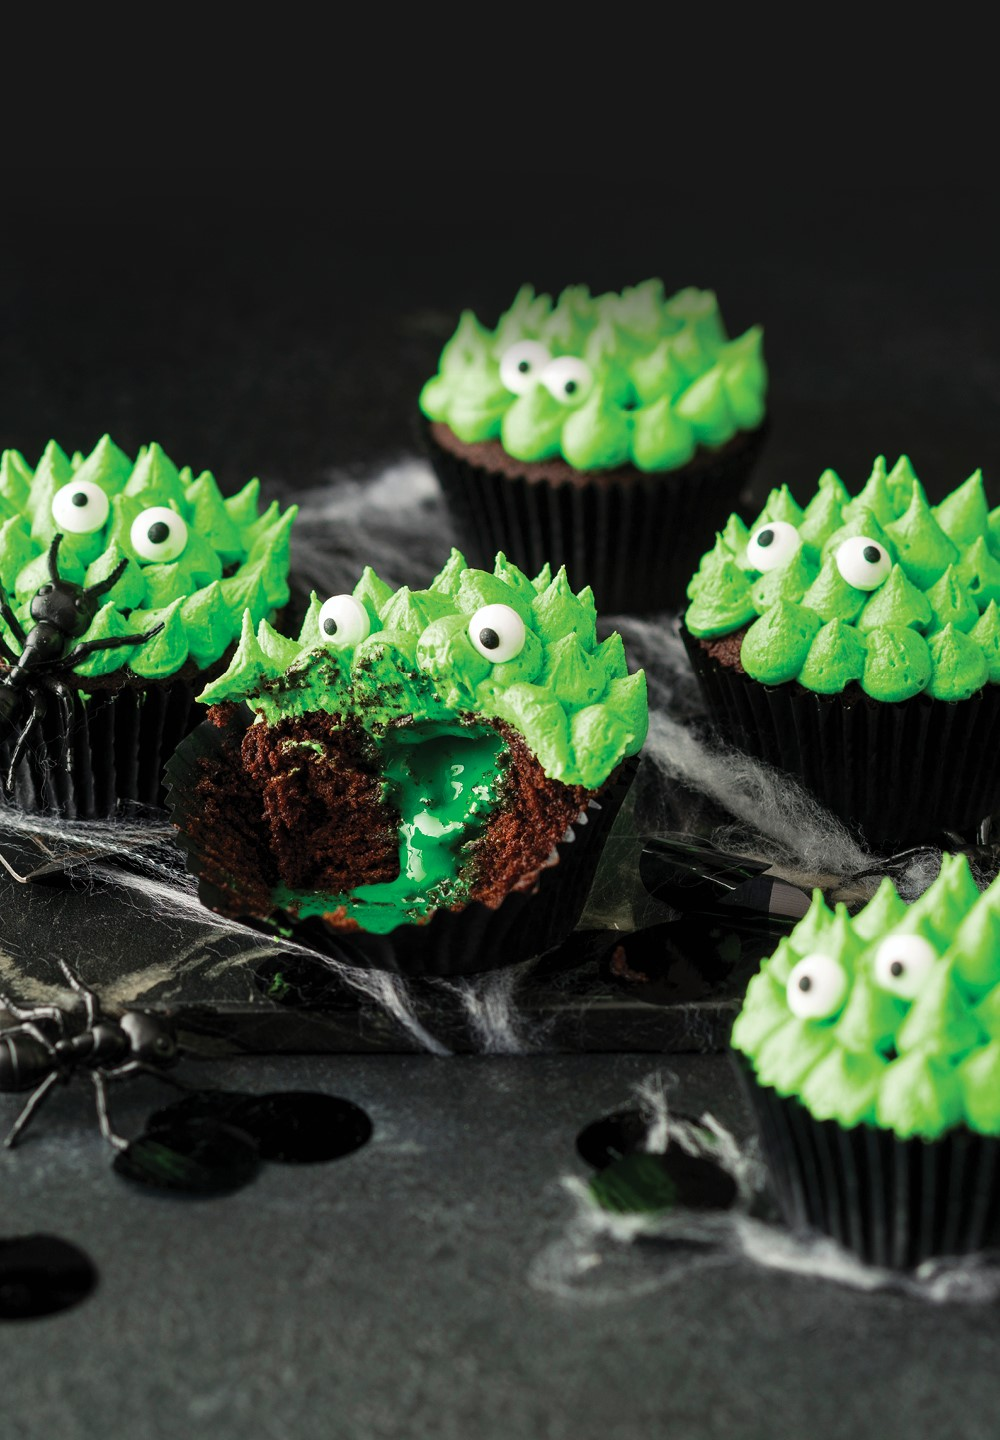 Slime Filled Chocolate Cupcakes